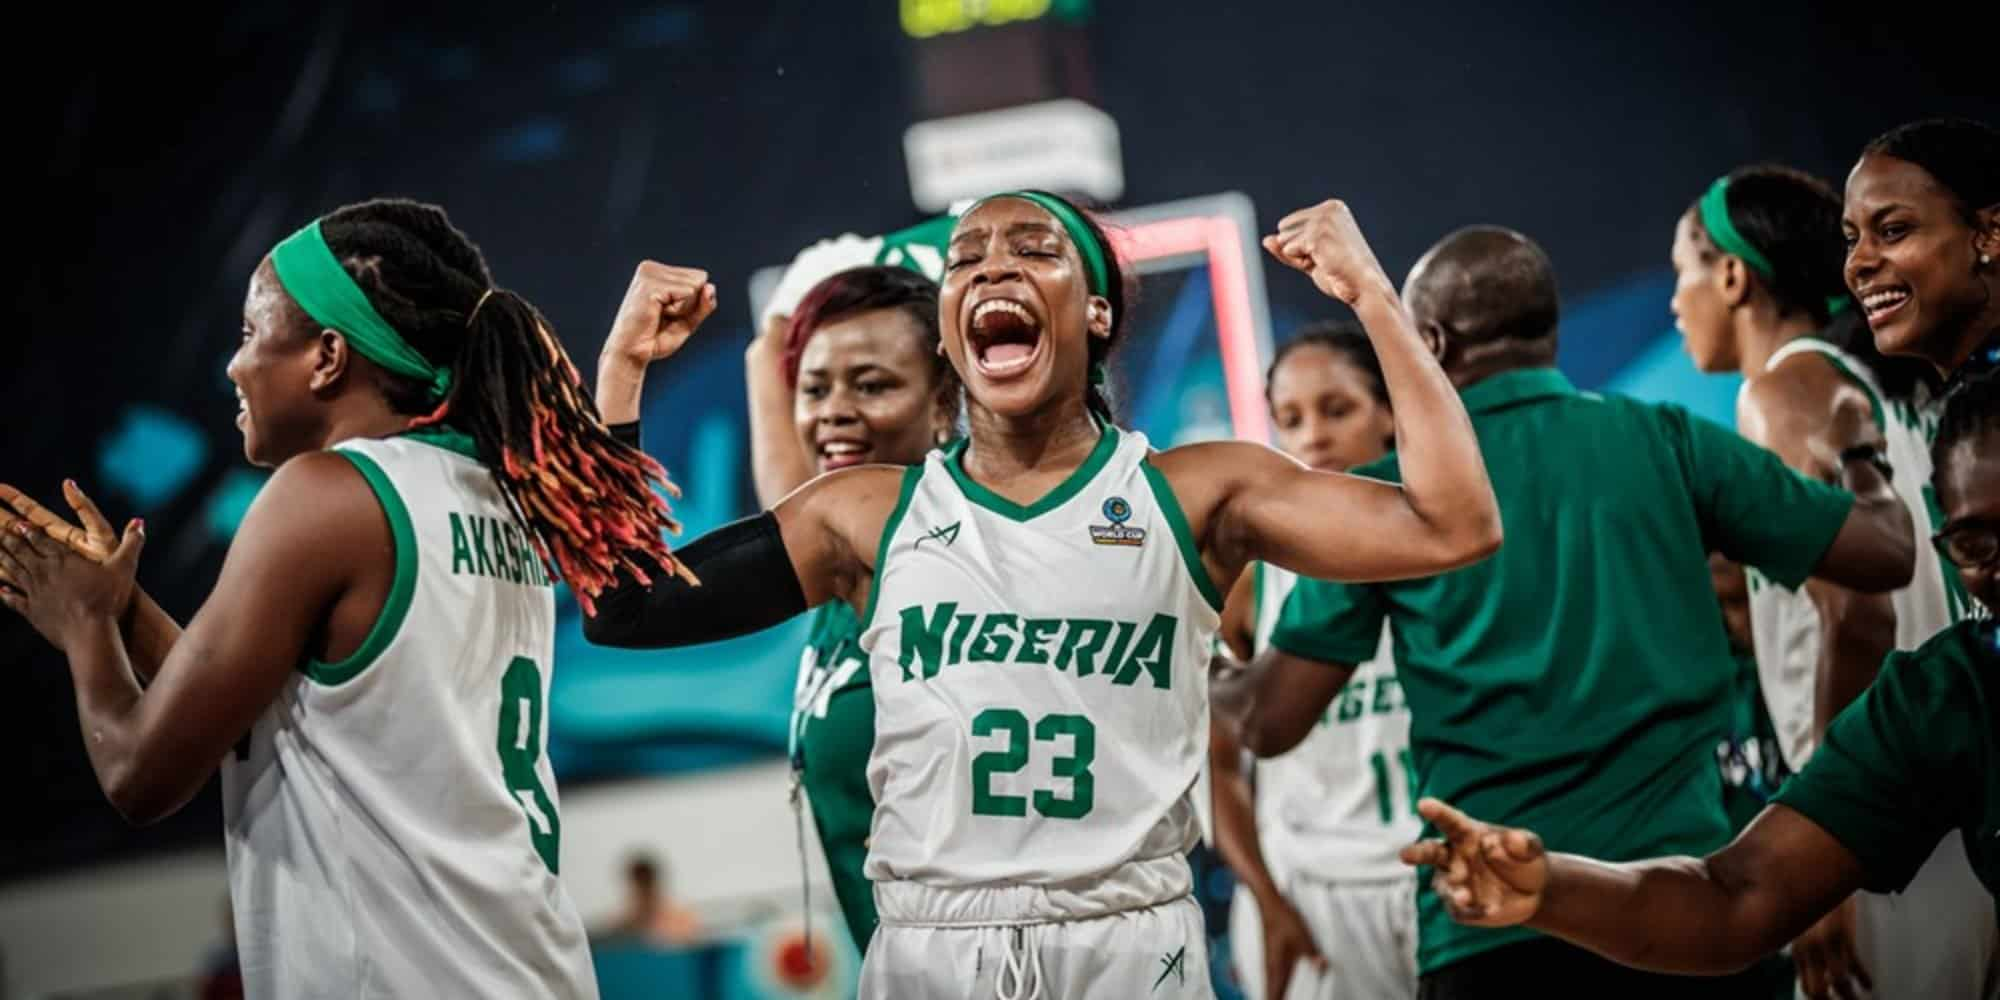 Nigeria's D'Tigress are the three-time Champions of the Afrobasket Games